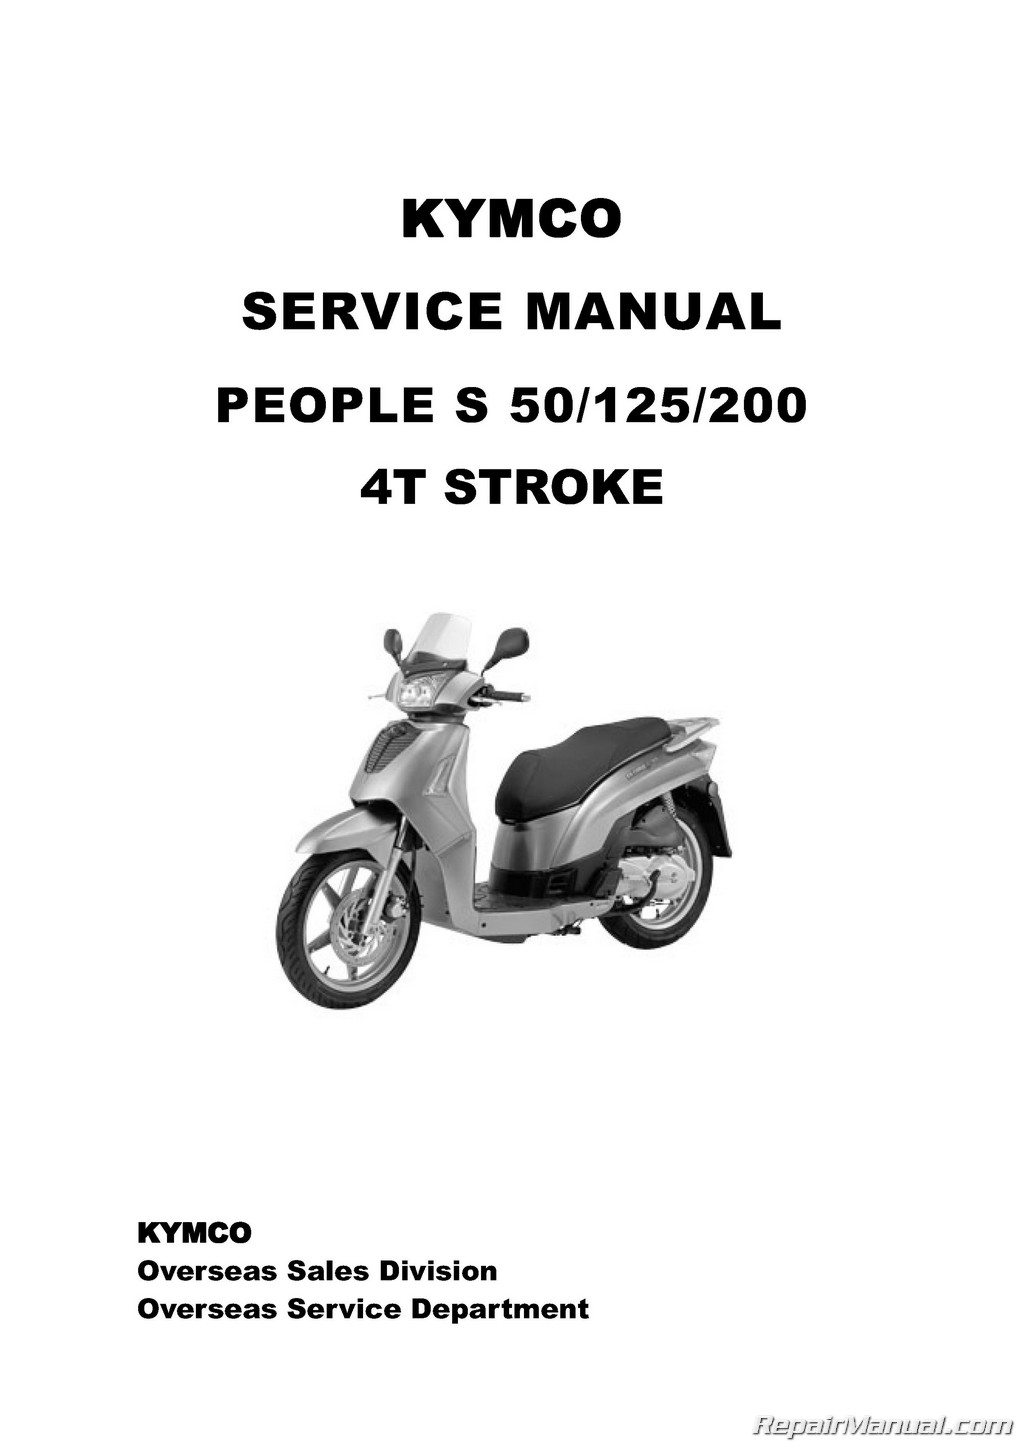 [WRG-4948] Wiring Diagrams For Kymco Scooters